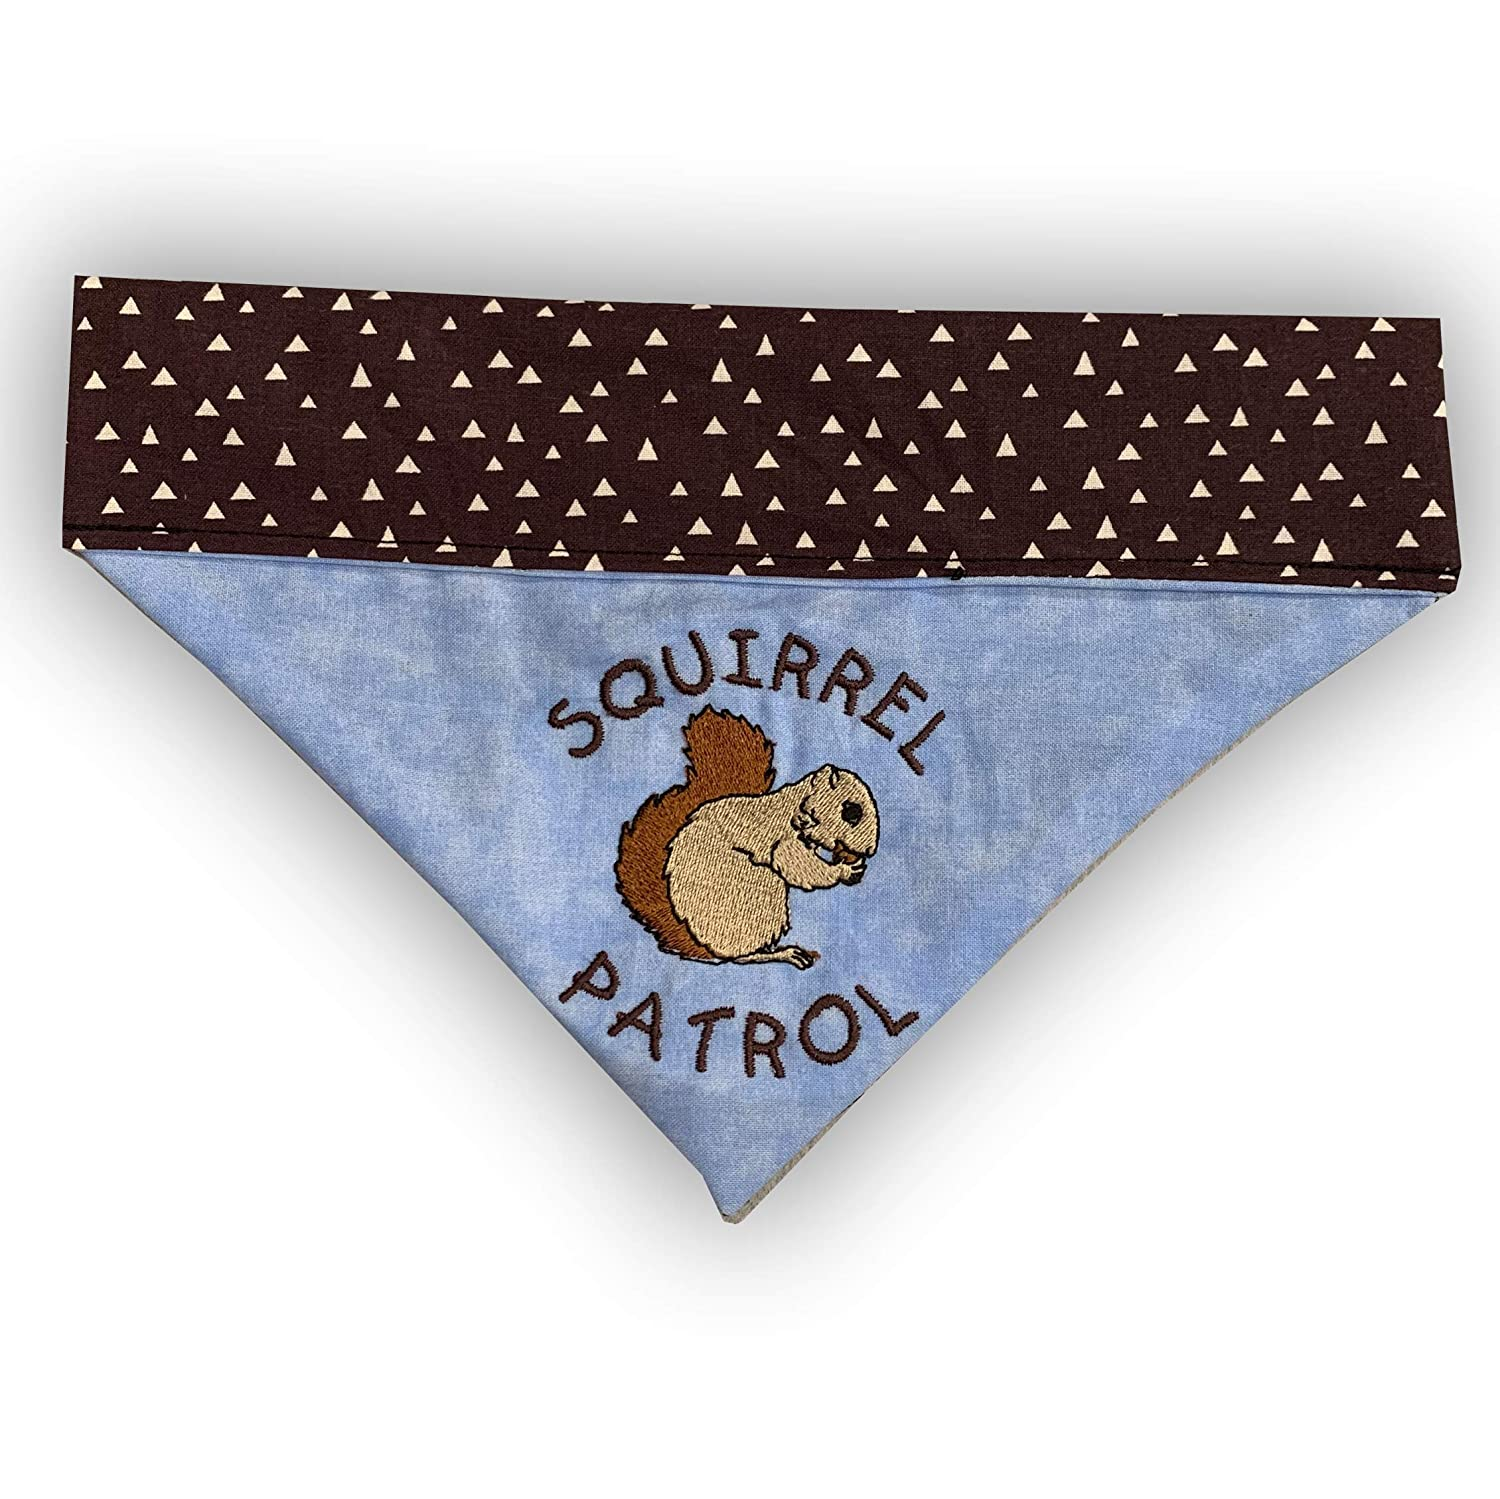 All stores are sold Squirrel New item Patrol Bandana Over Collar the Embroidered Dog